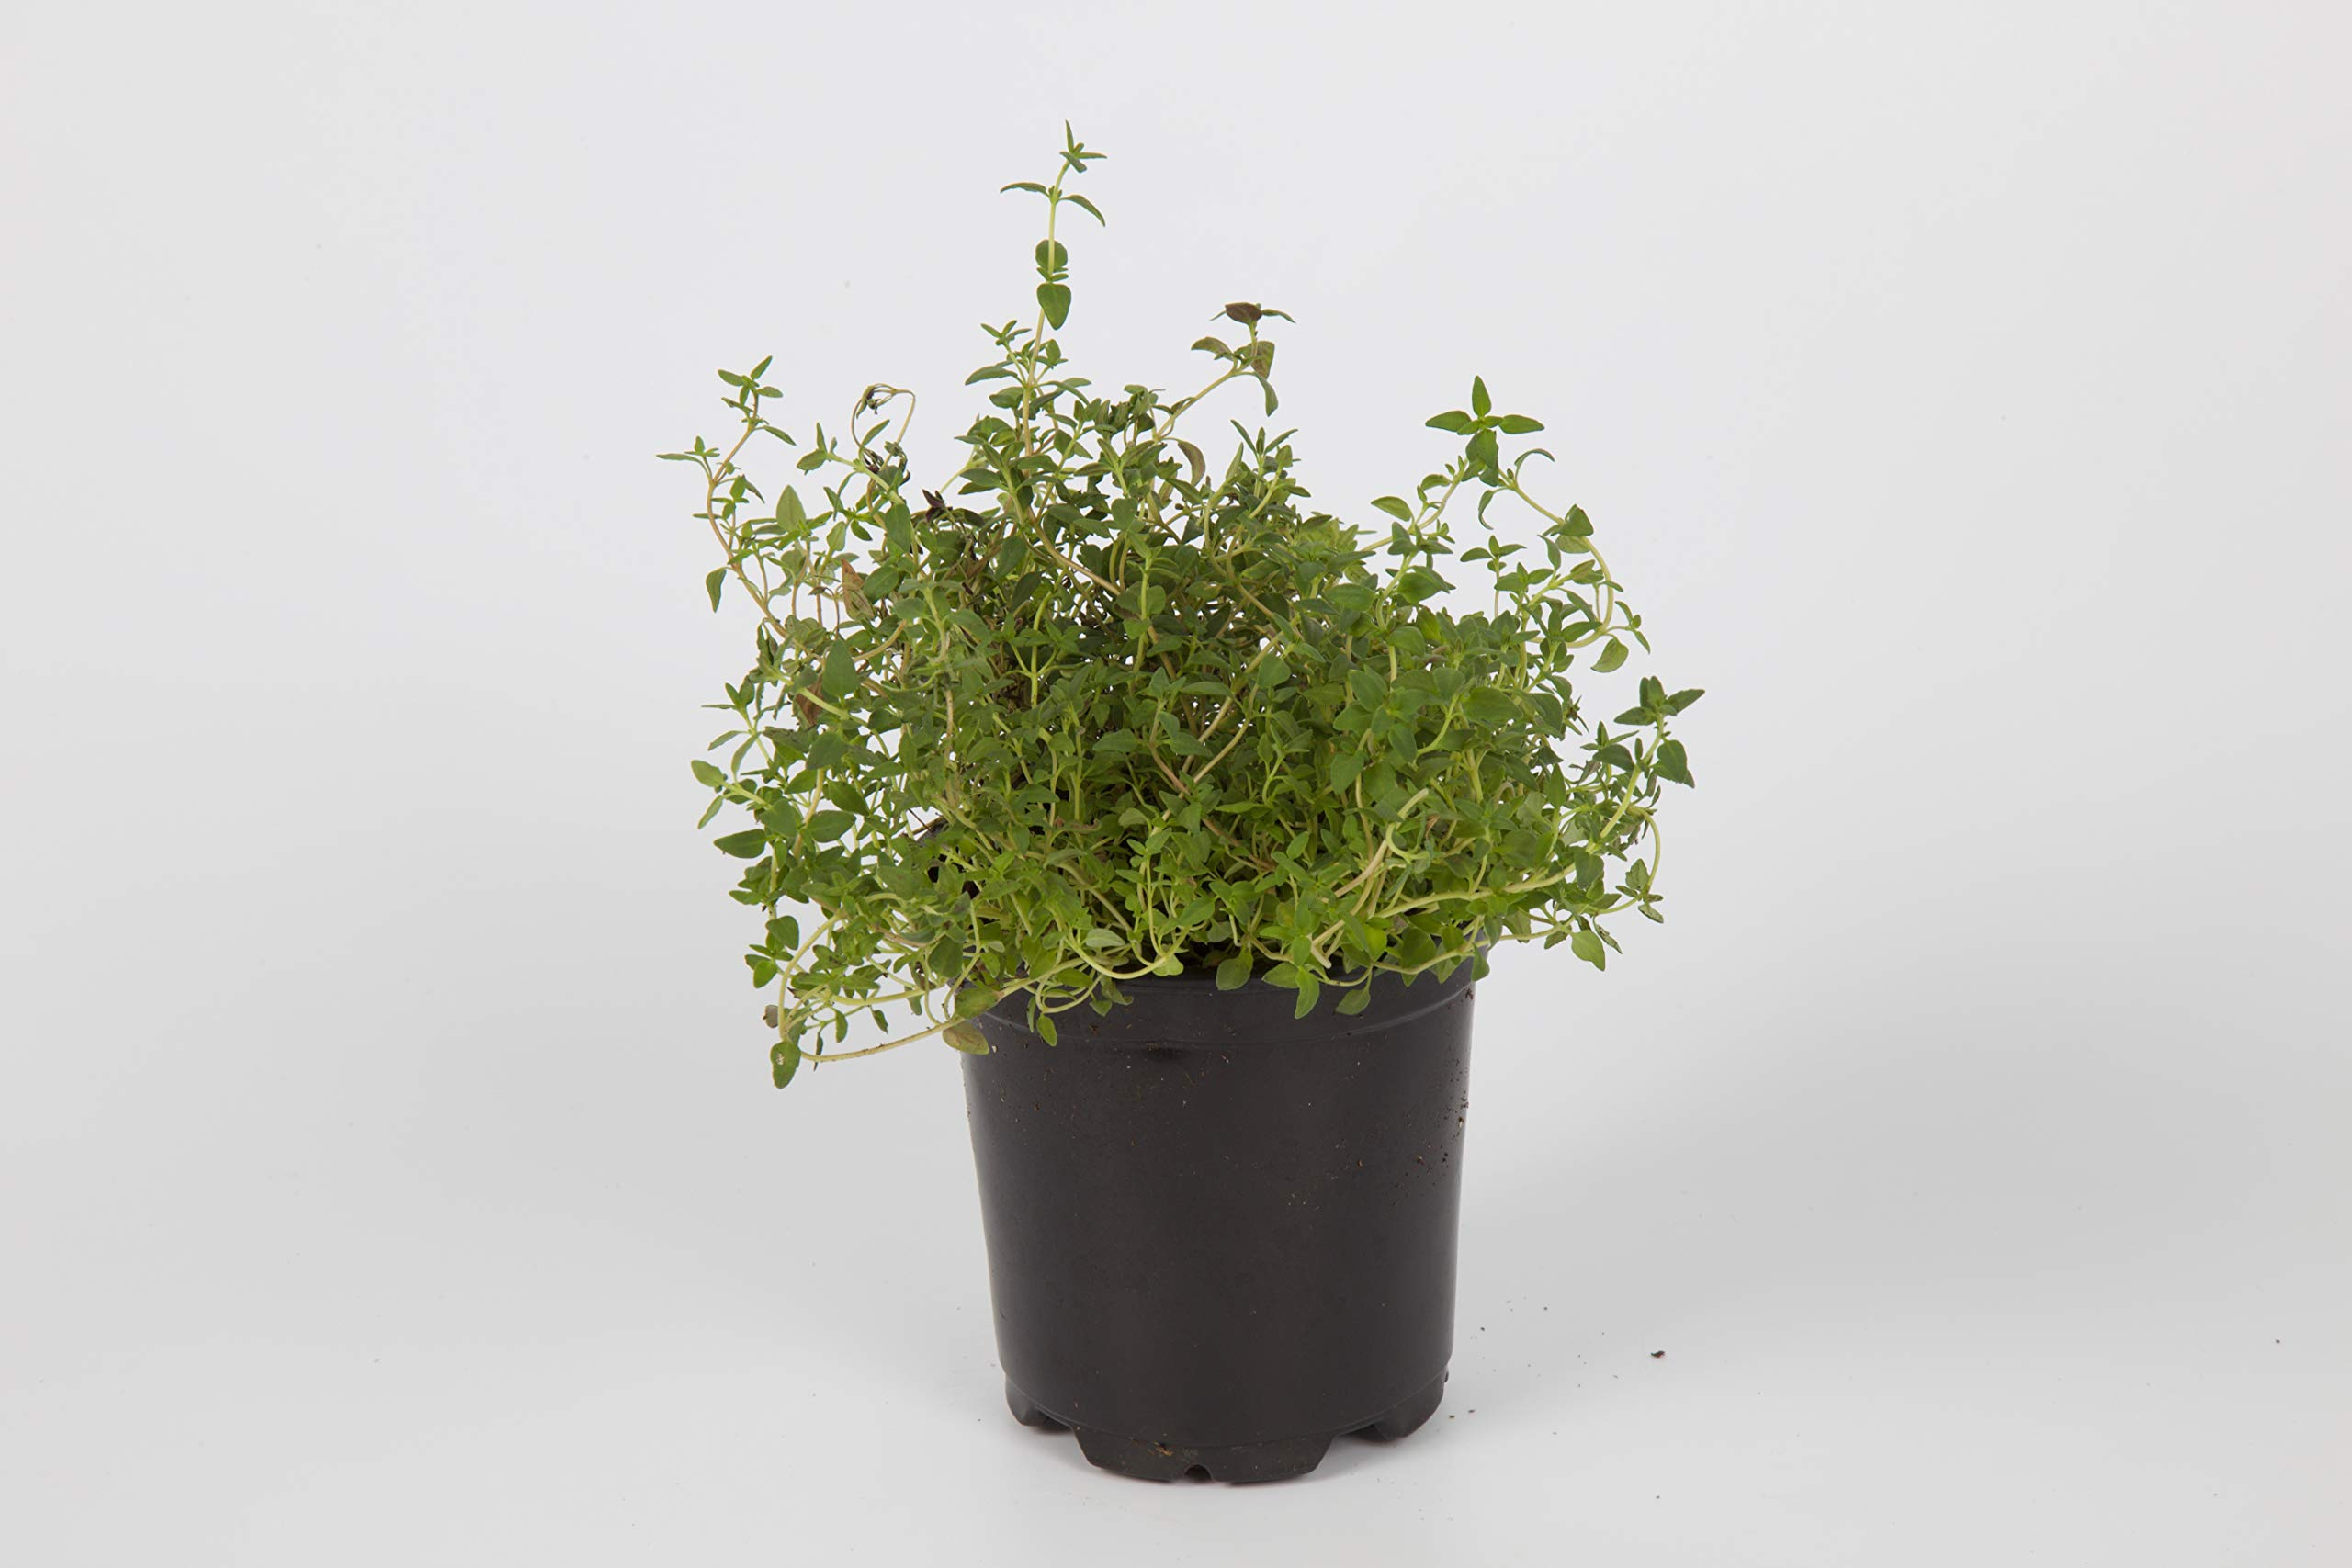 The Three Company Live Plant Aromatic Herb 4'' Thyme (4 Per Pack), Full & Healthy, Naturally Enhances Health